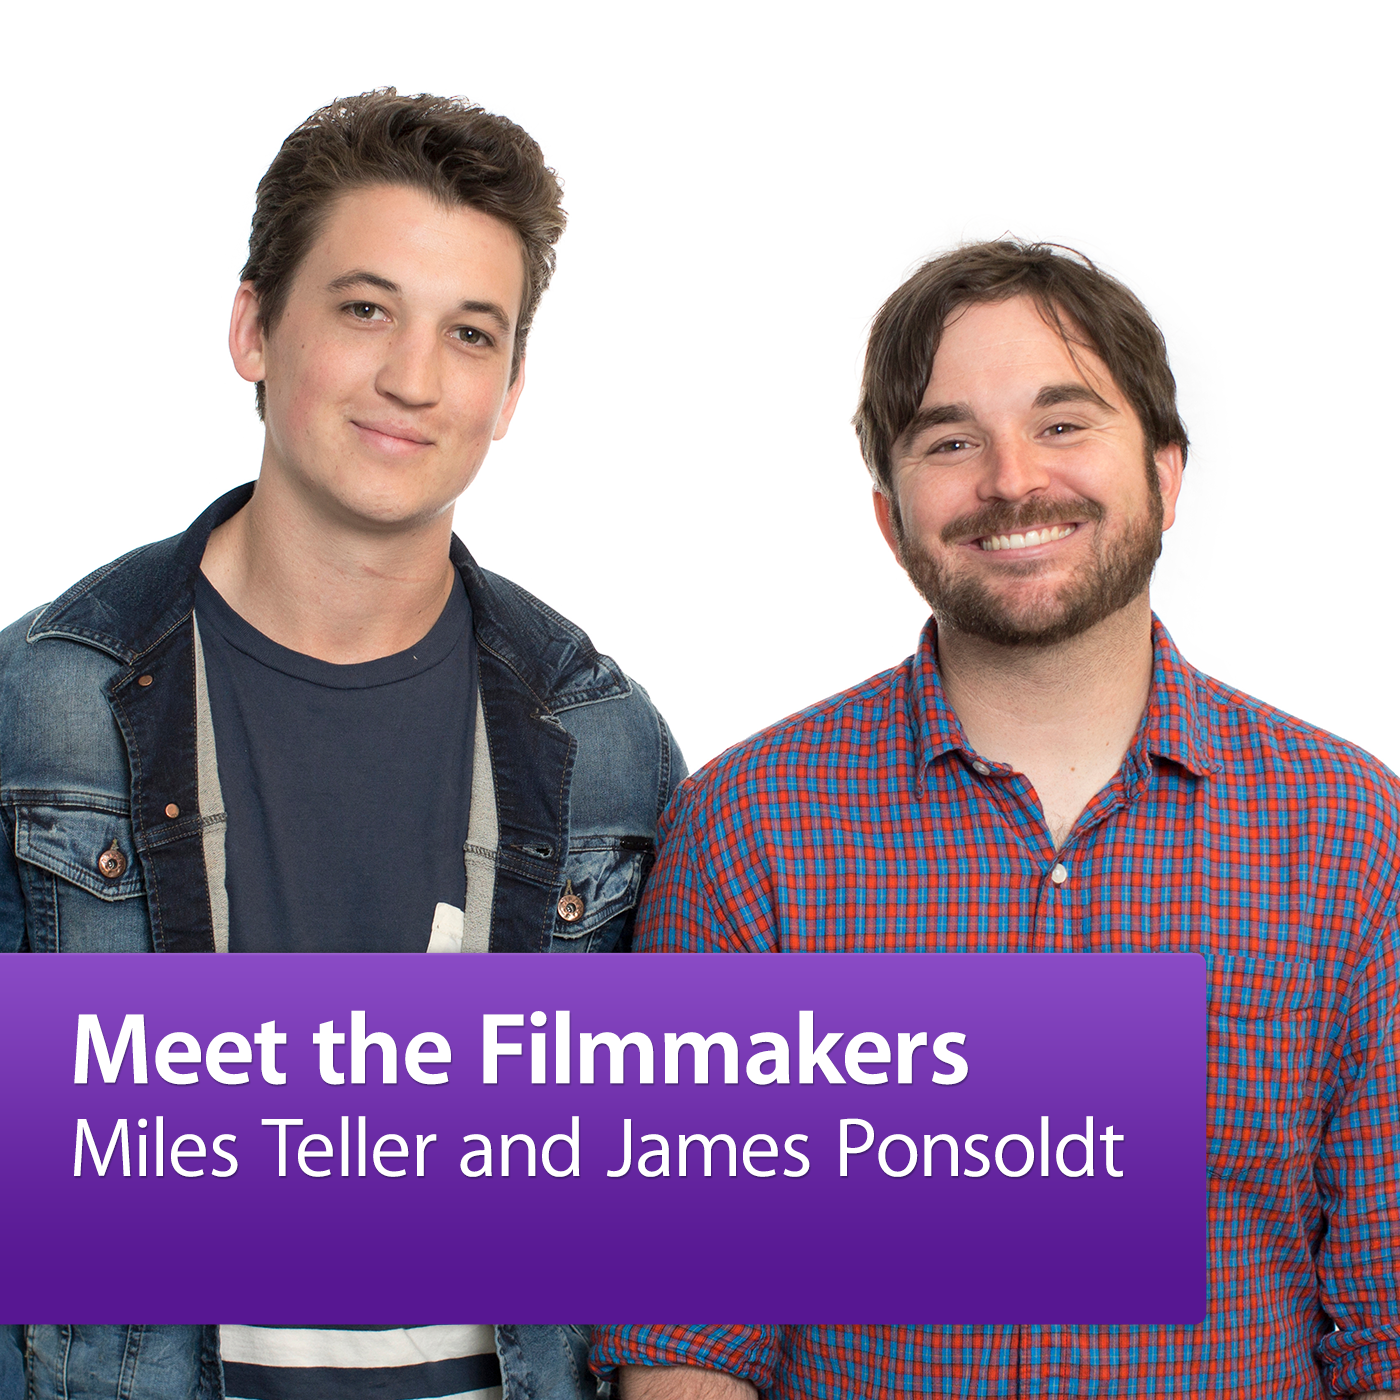 James Ponsoldt and Miles Teller: Meet the Filmmaker